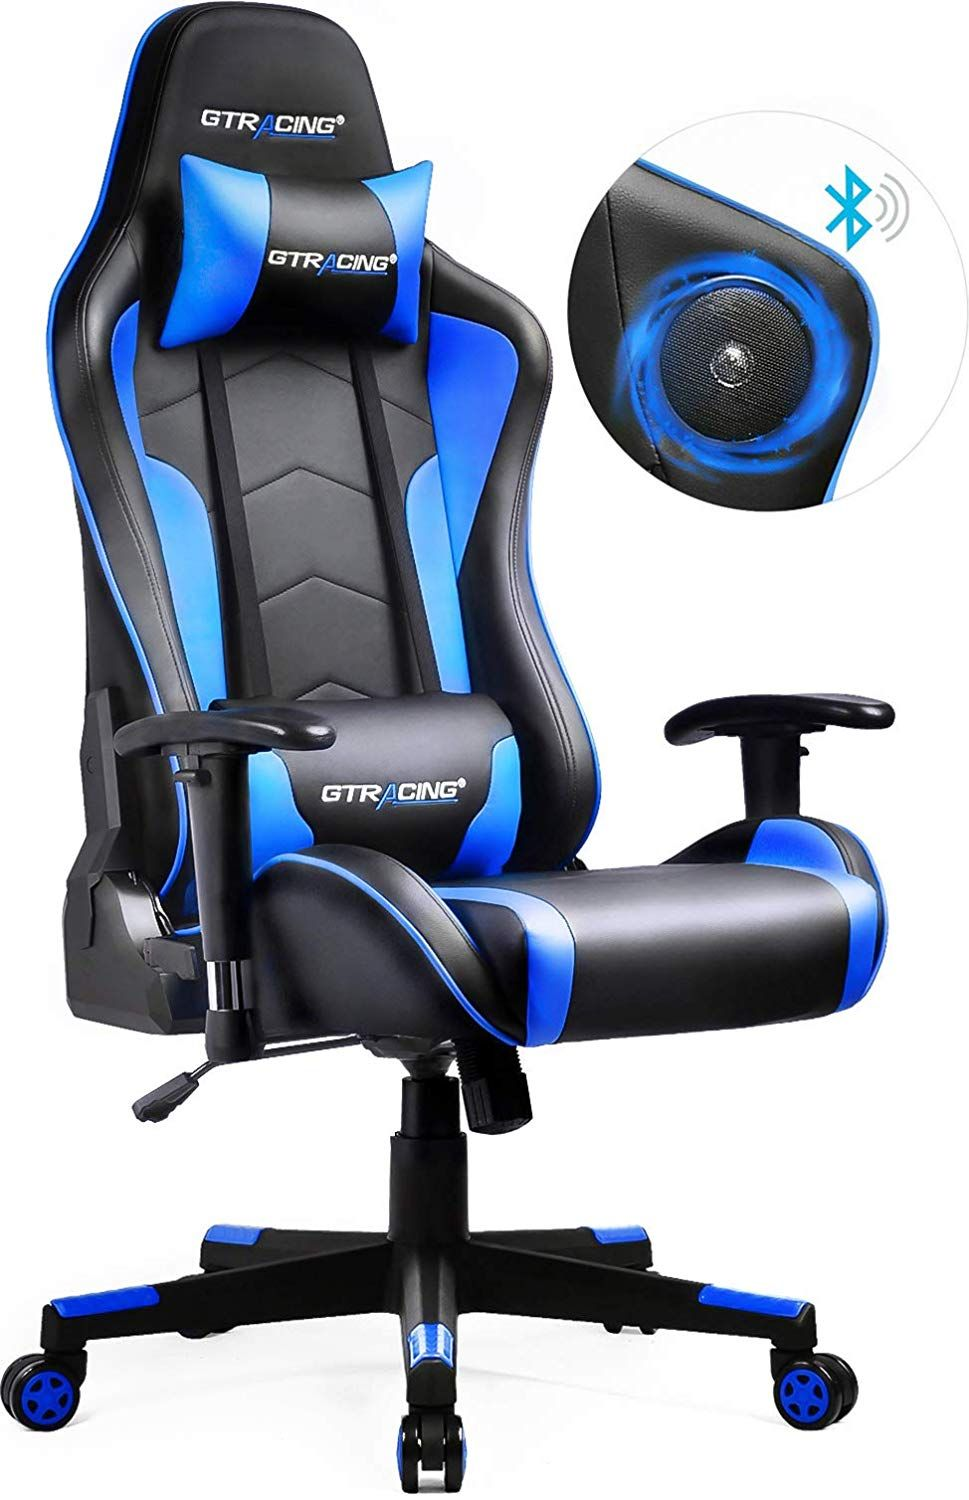 Gtracing Gaming Chair Review All Models Chairsfx Computer Desk Chair Gaming Chair Desk Chair